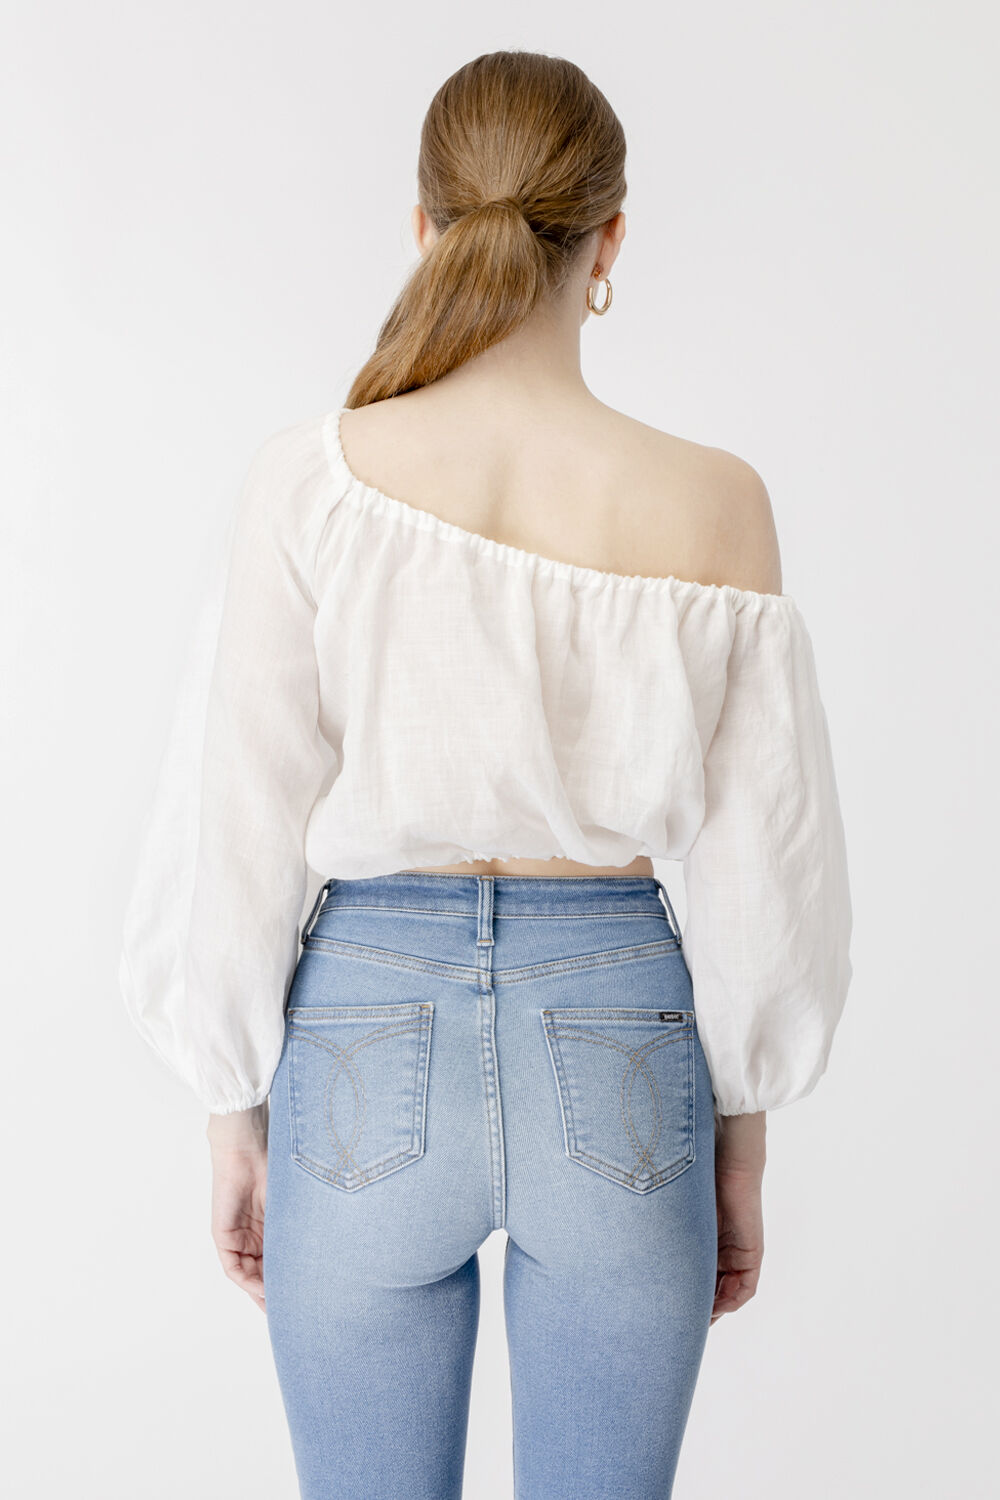 GIANNA ONE SHOULDER TOP in colour CLOUD DANCER